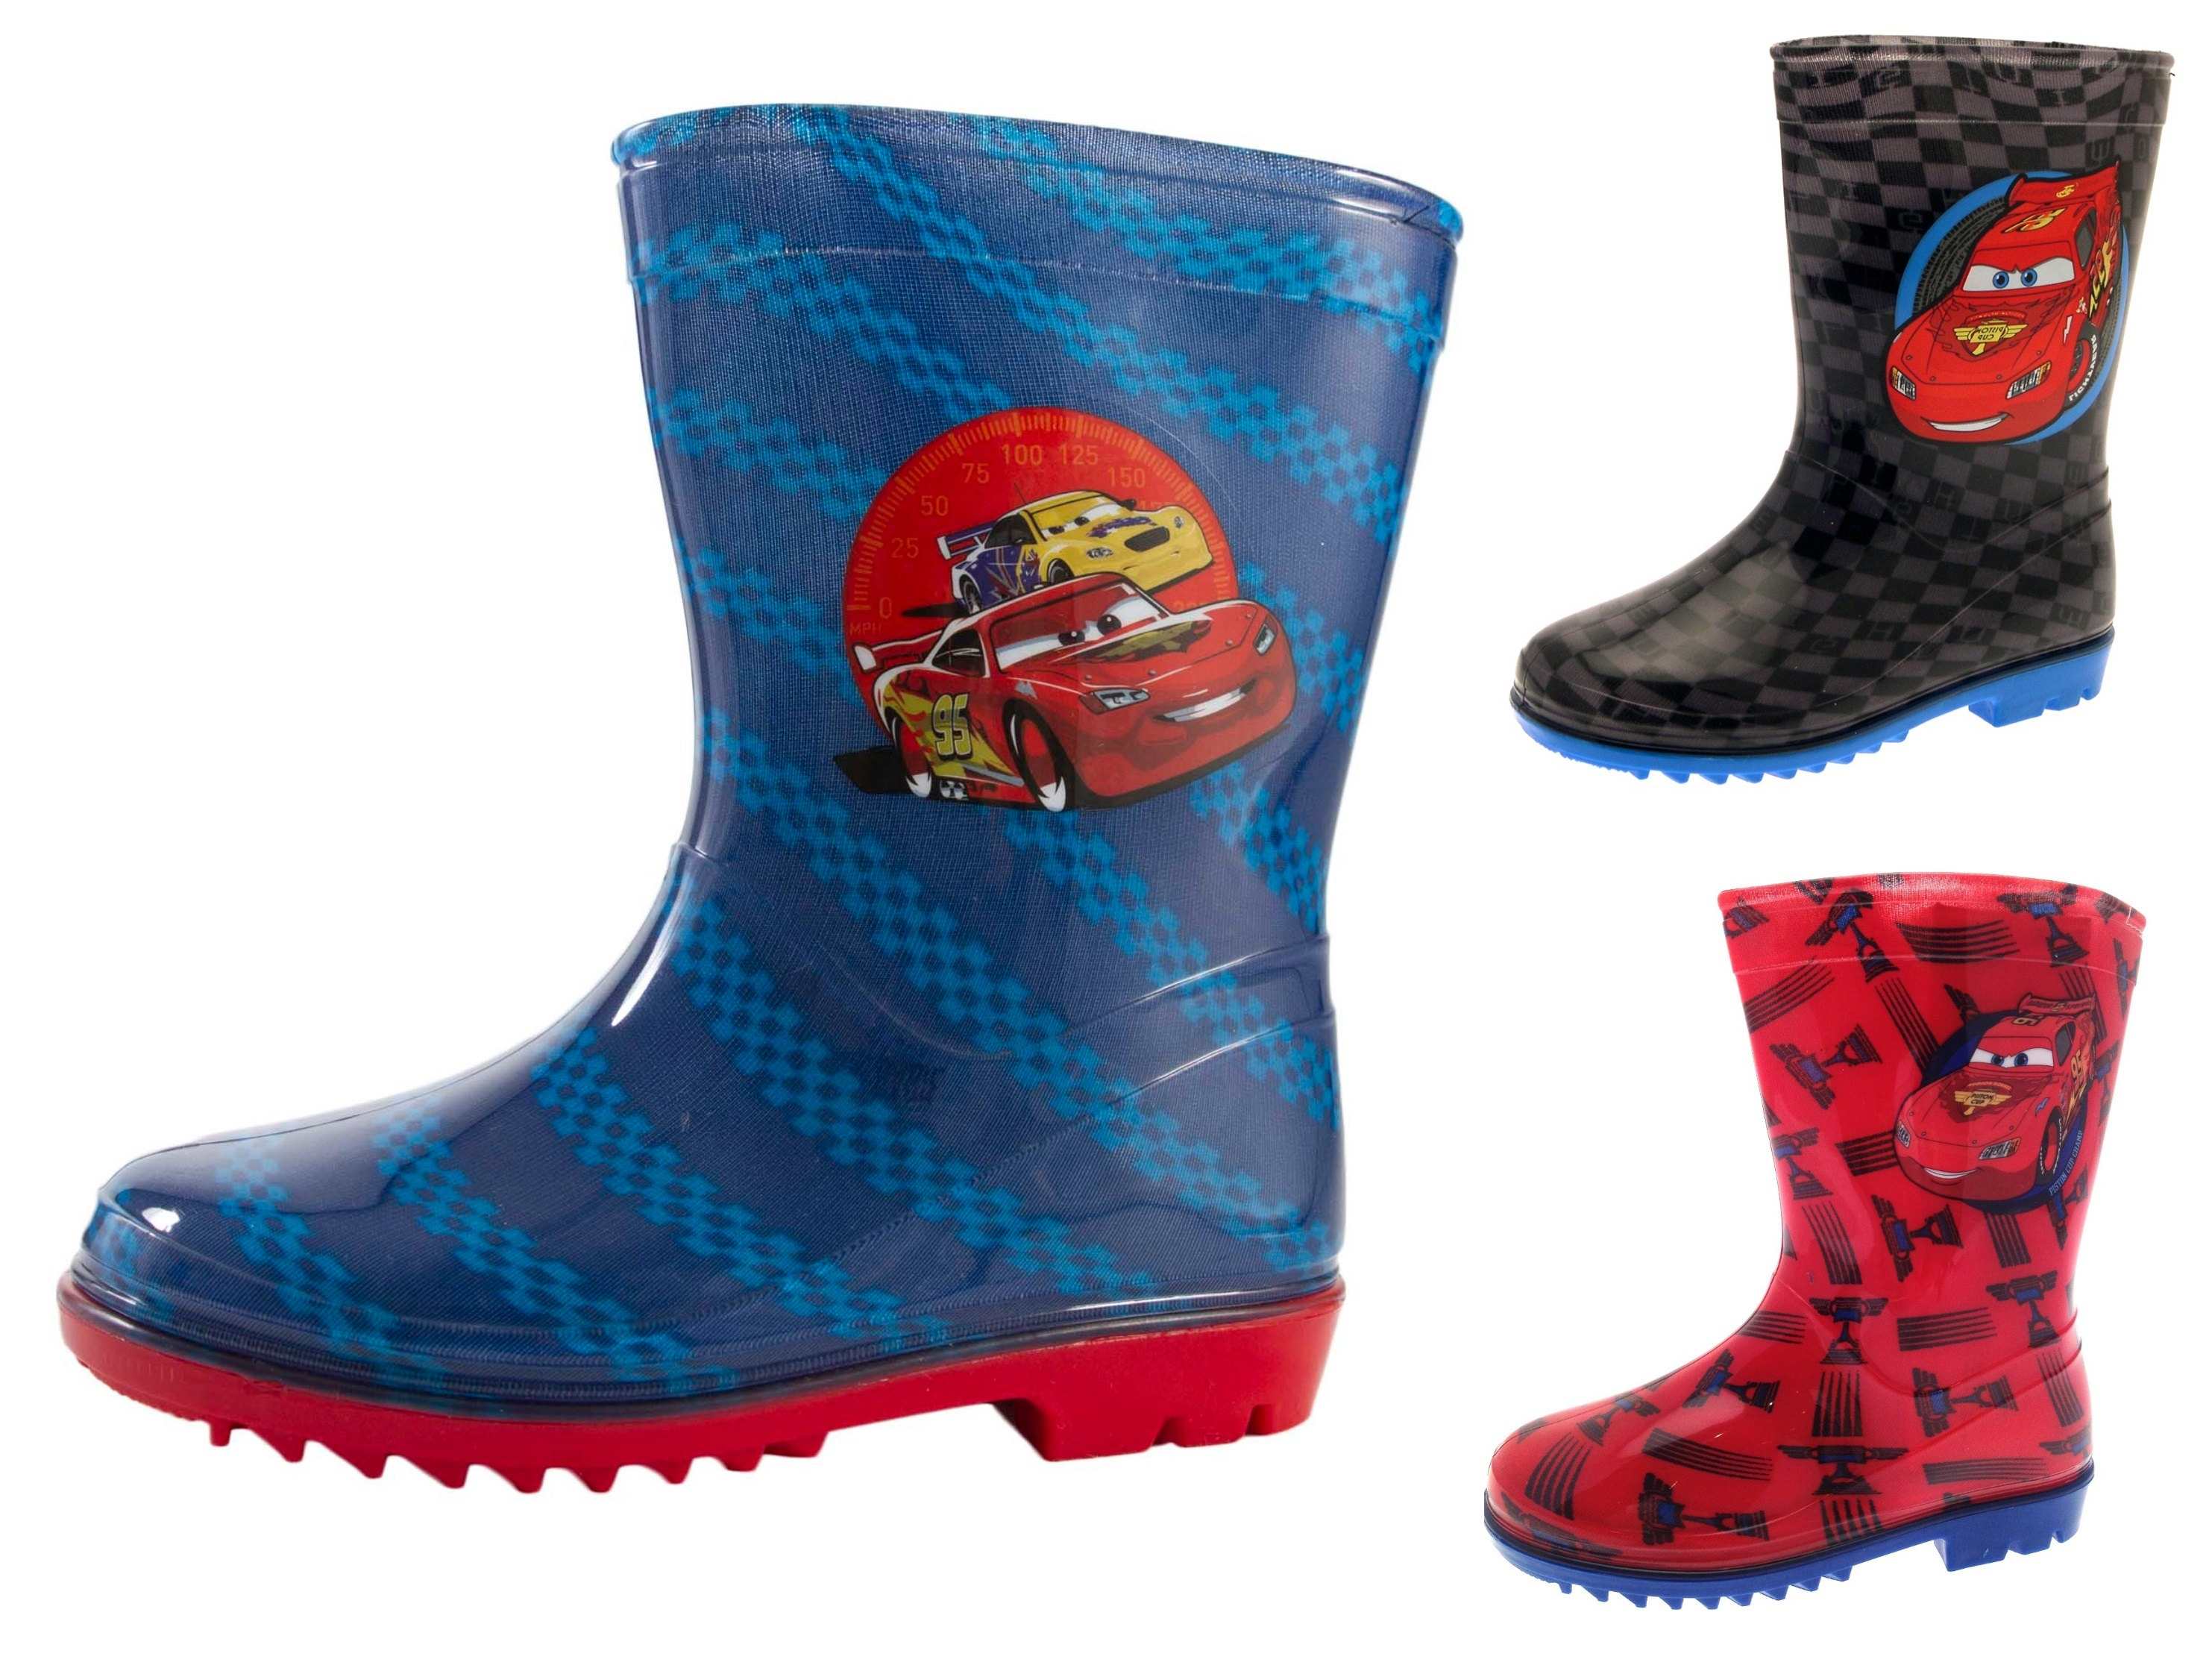 Lightning Mcqueen Snow Boots. heresfilmz8.ga shows fashion collections of current Lightning Mcqueen Snow Boots. You could also find more popular women items and recommendation forBoots, as there always a huge selection for allSandalsand matches items. Sincerely hope all our customers enjoy shopping our new arrivalHeelswith good quality and latest fashion styles.